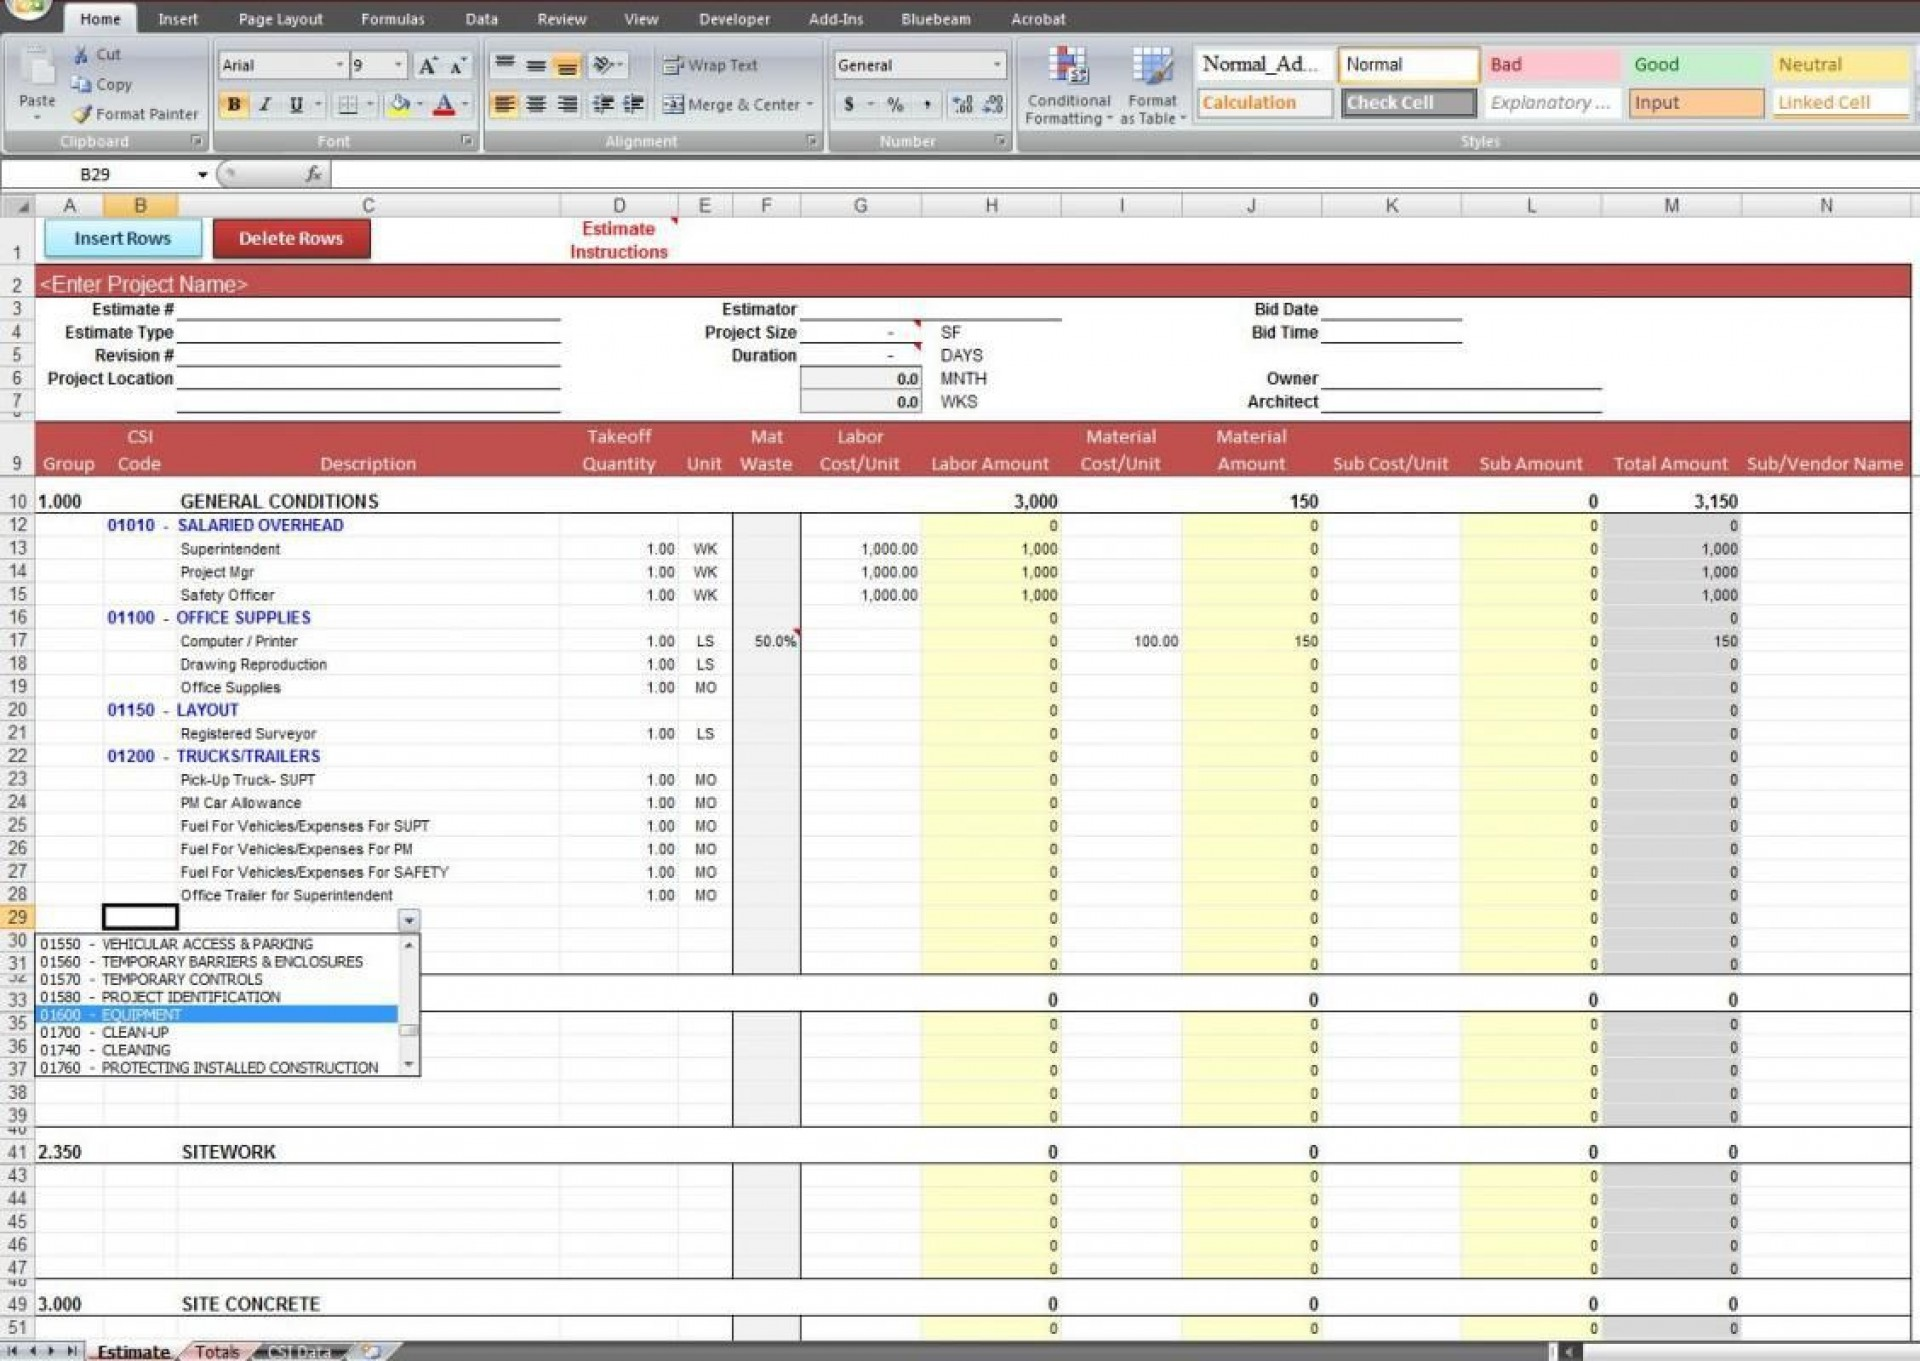 005 Fascinating Construction Estimating Spreadsheet Template Picture  Example Estimate Free Cost1920